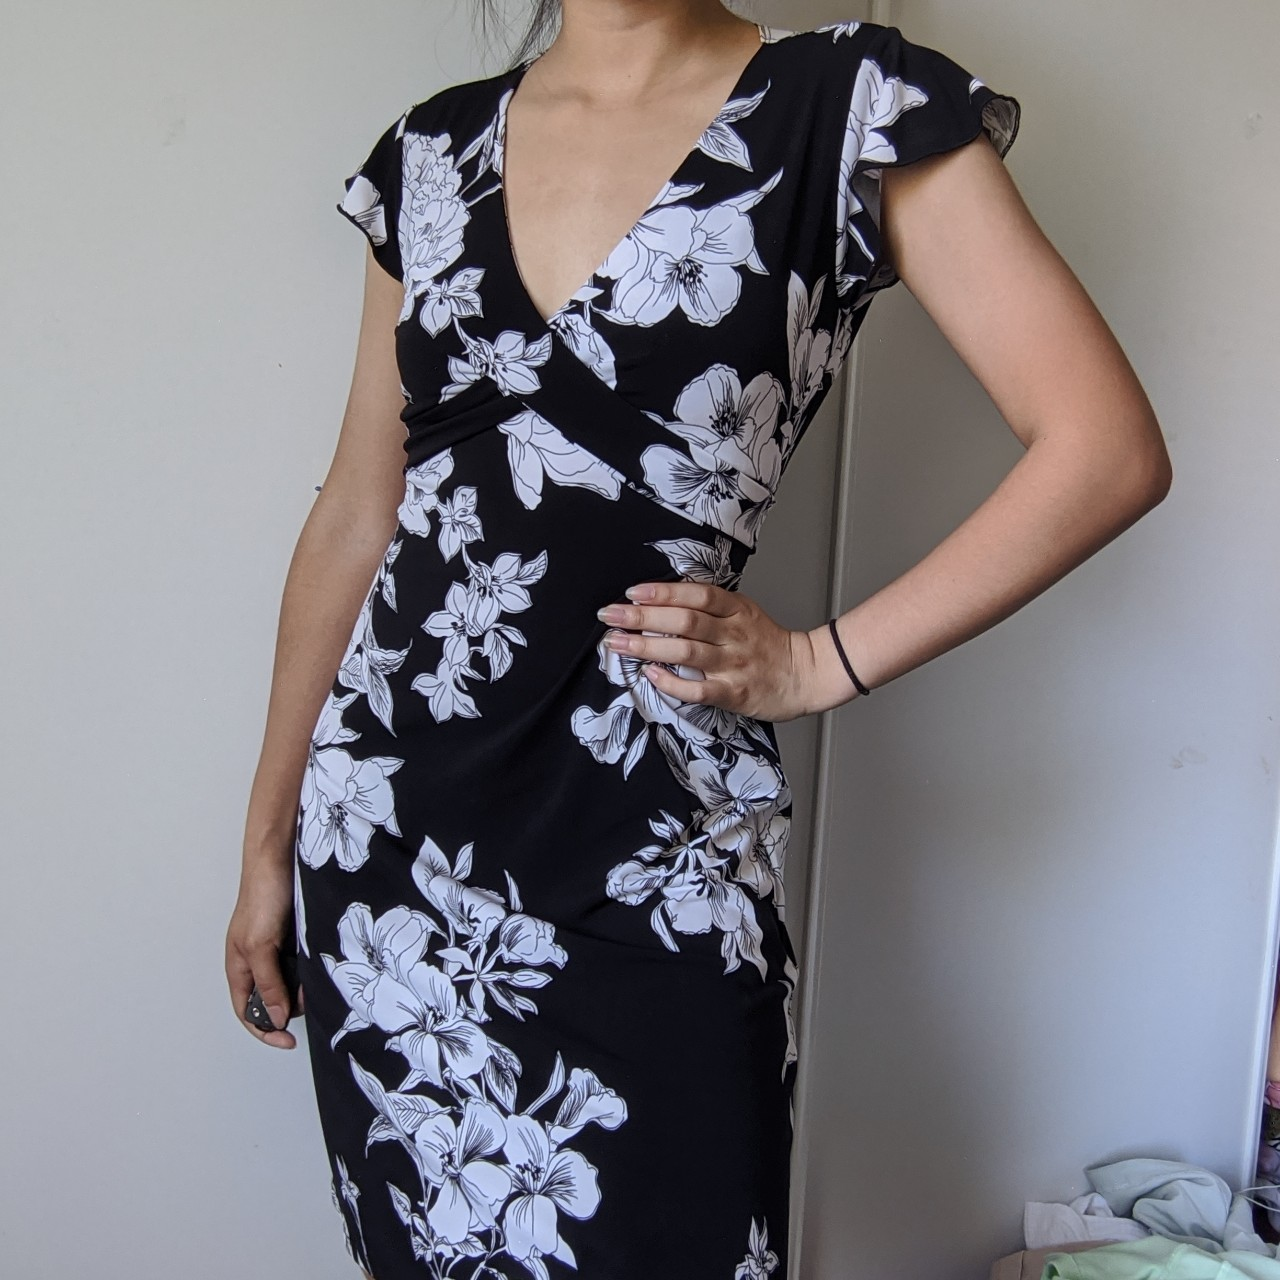 Gorgeous black and white floral dress with ruffled sleeves!🤍🖤🤍